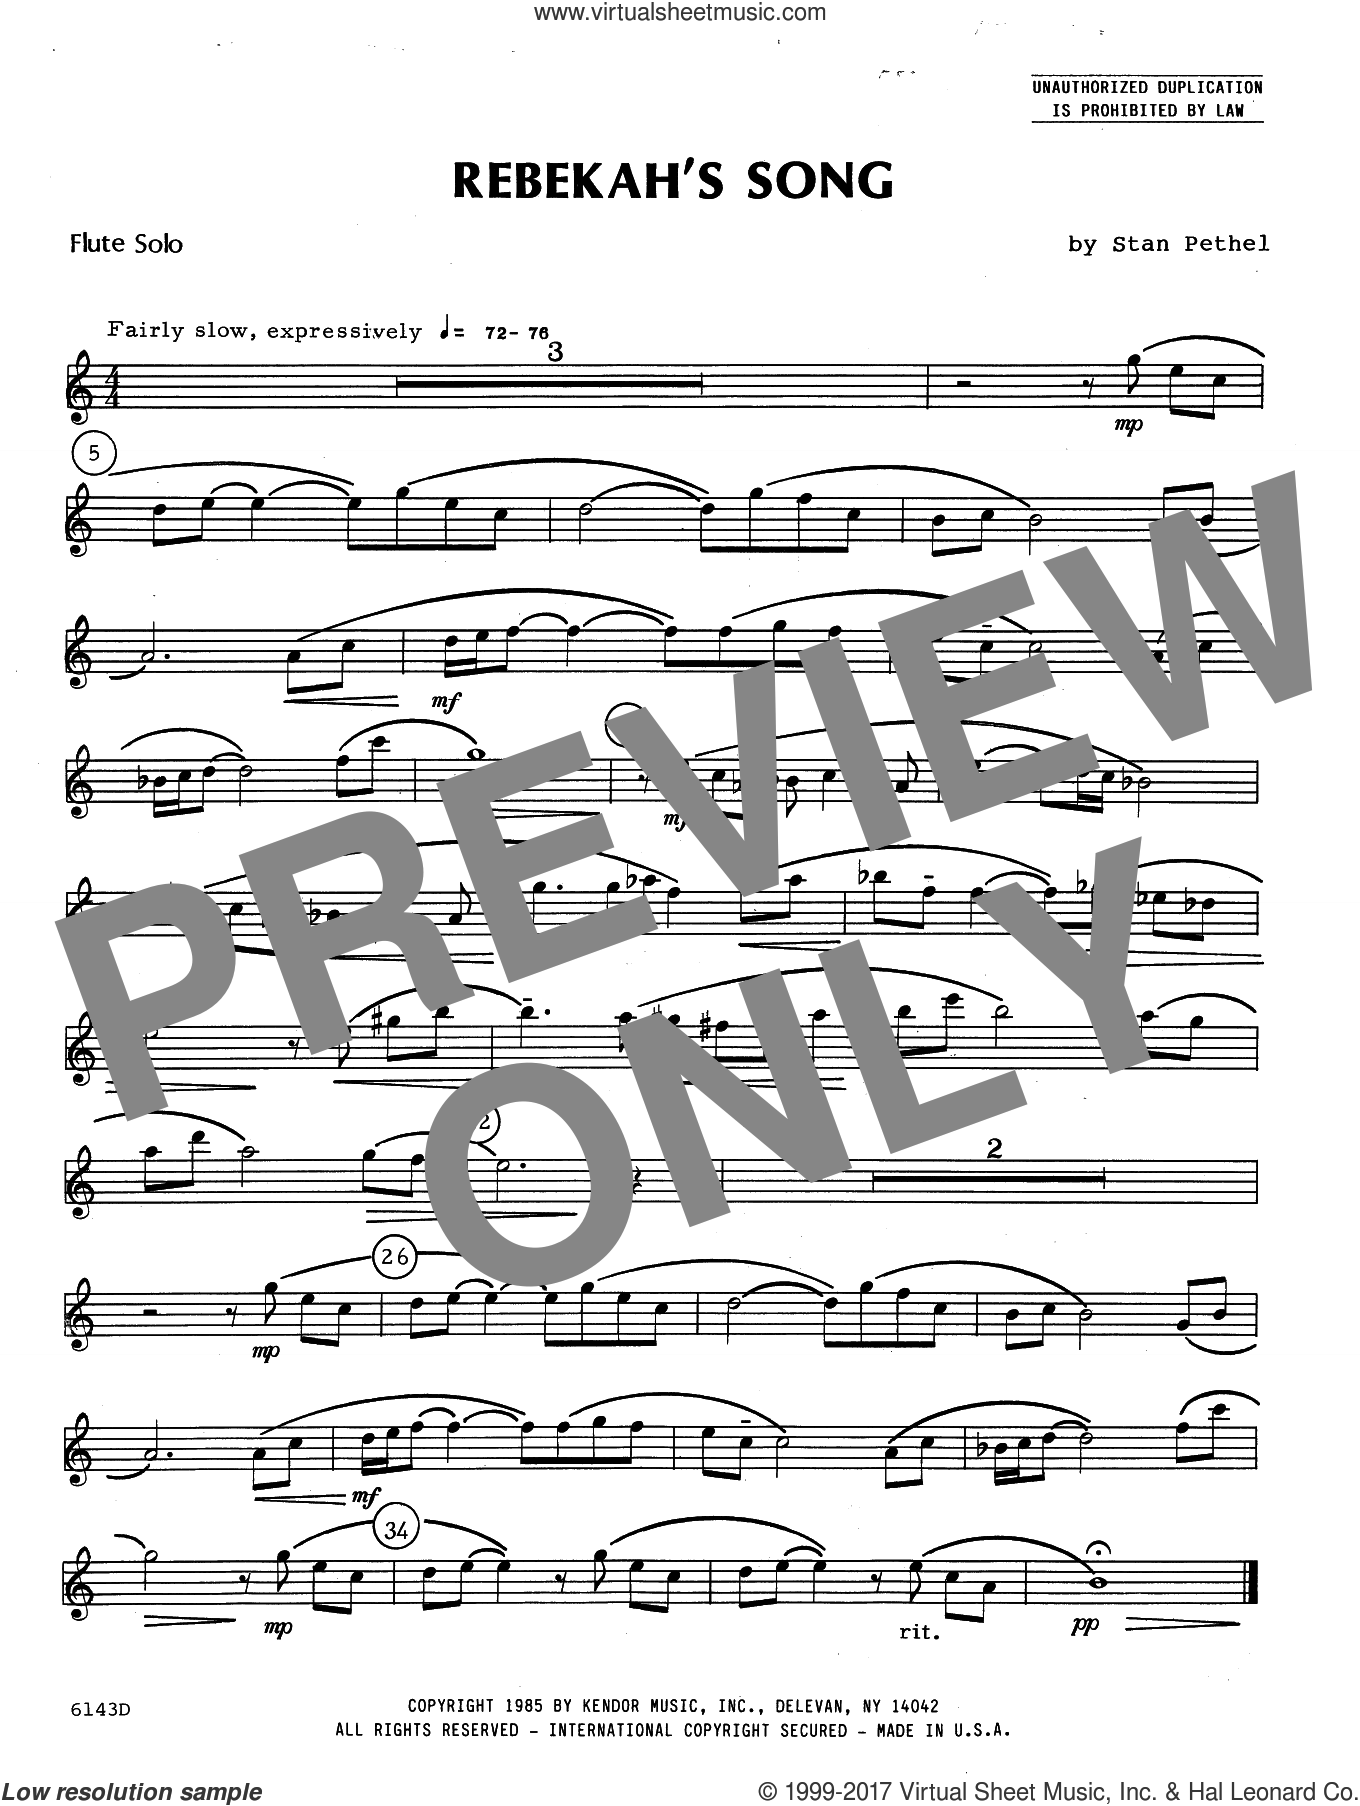 Rebekah's Song (complete set of parts) sheet music for flute and piano by Stan Pethel, intermediate flute. Score Image Preview.